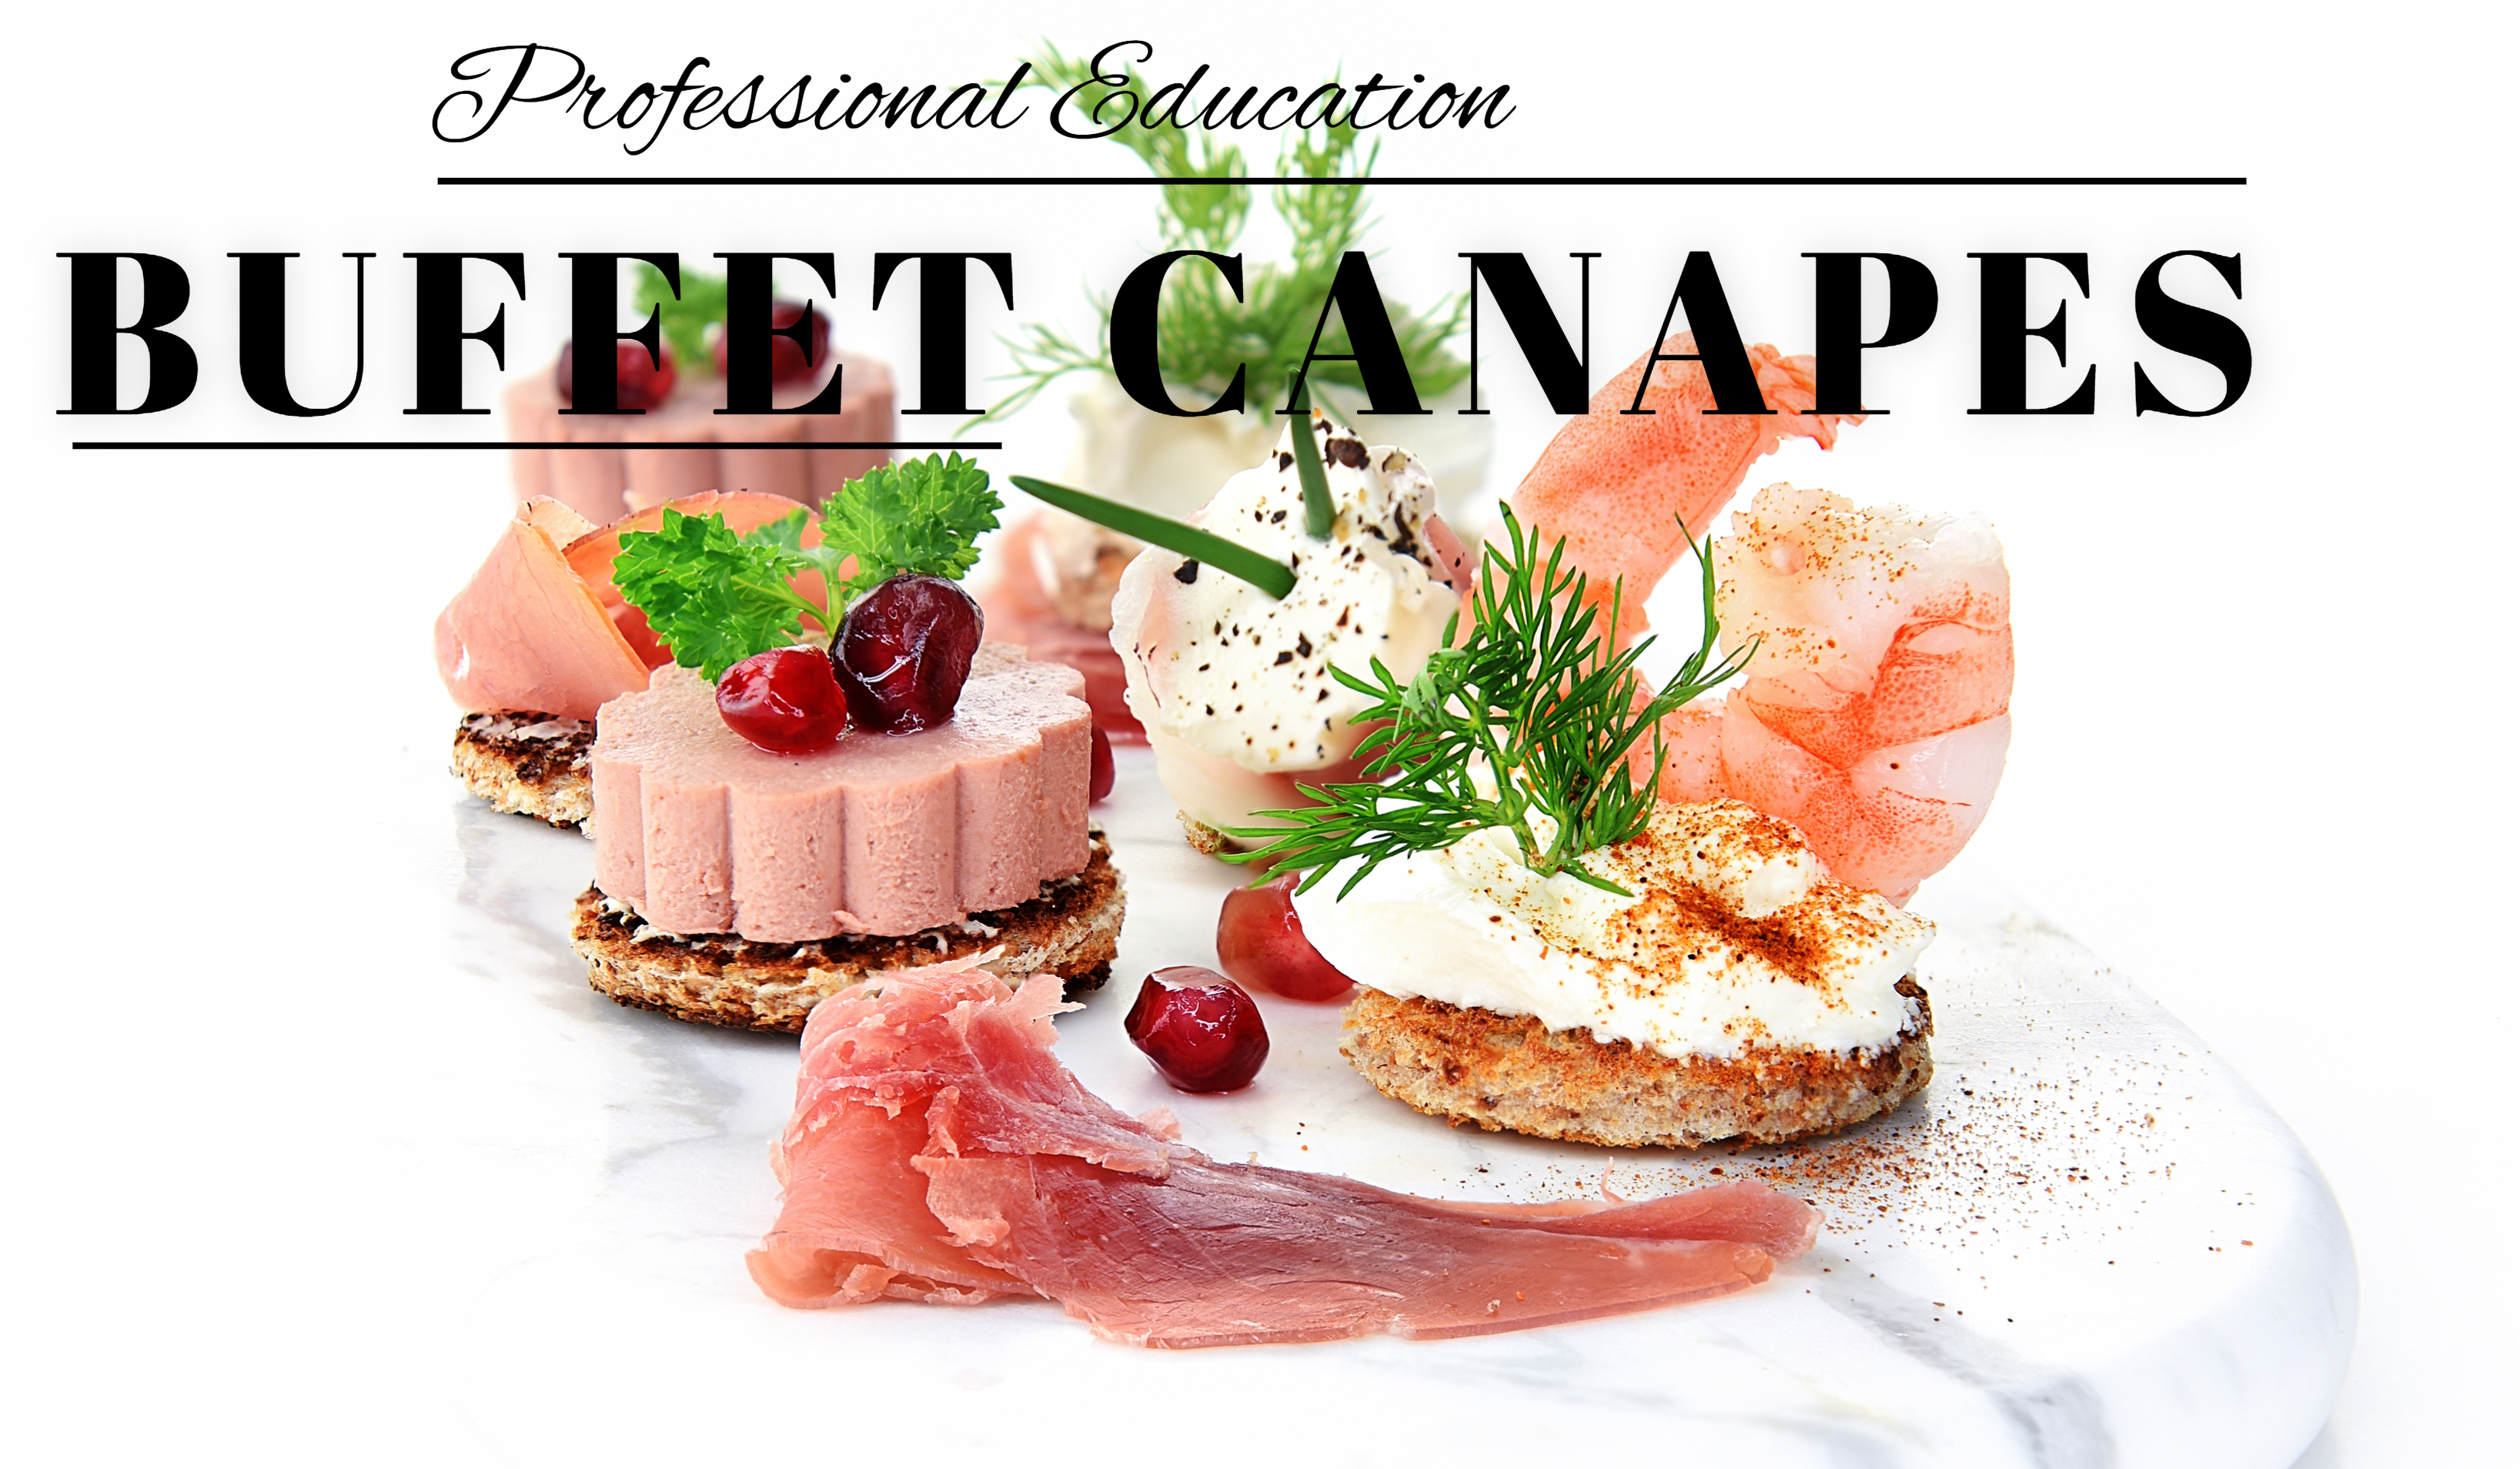 BUFFET CANAPE'S